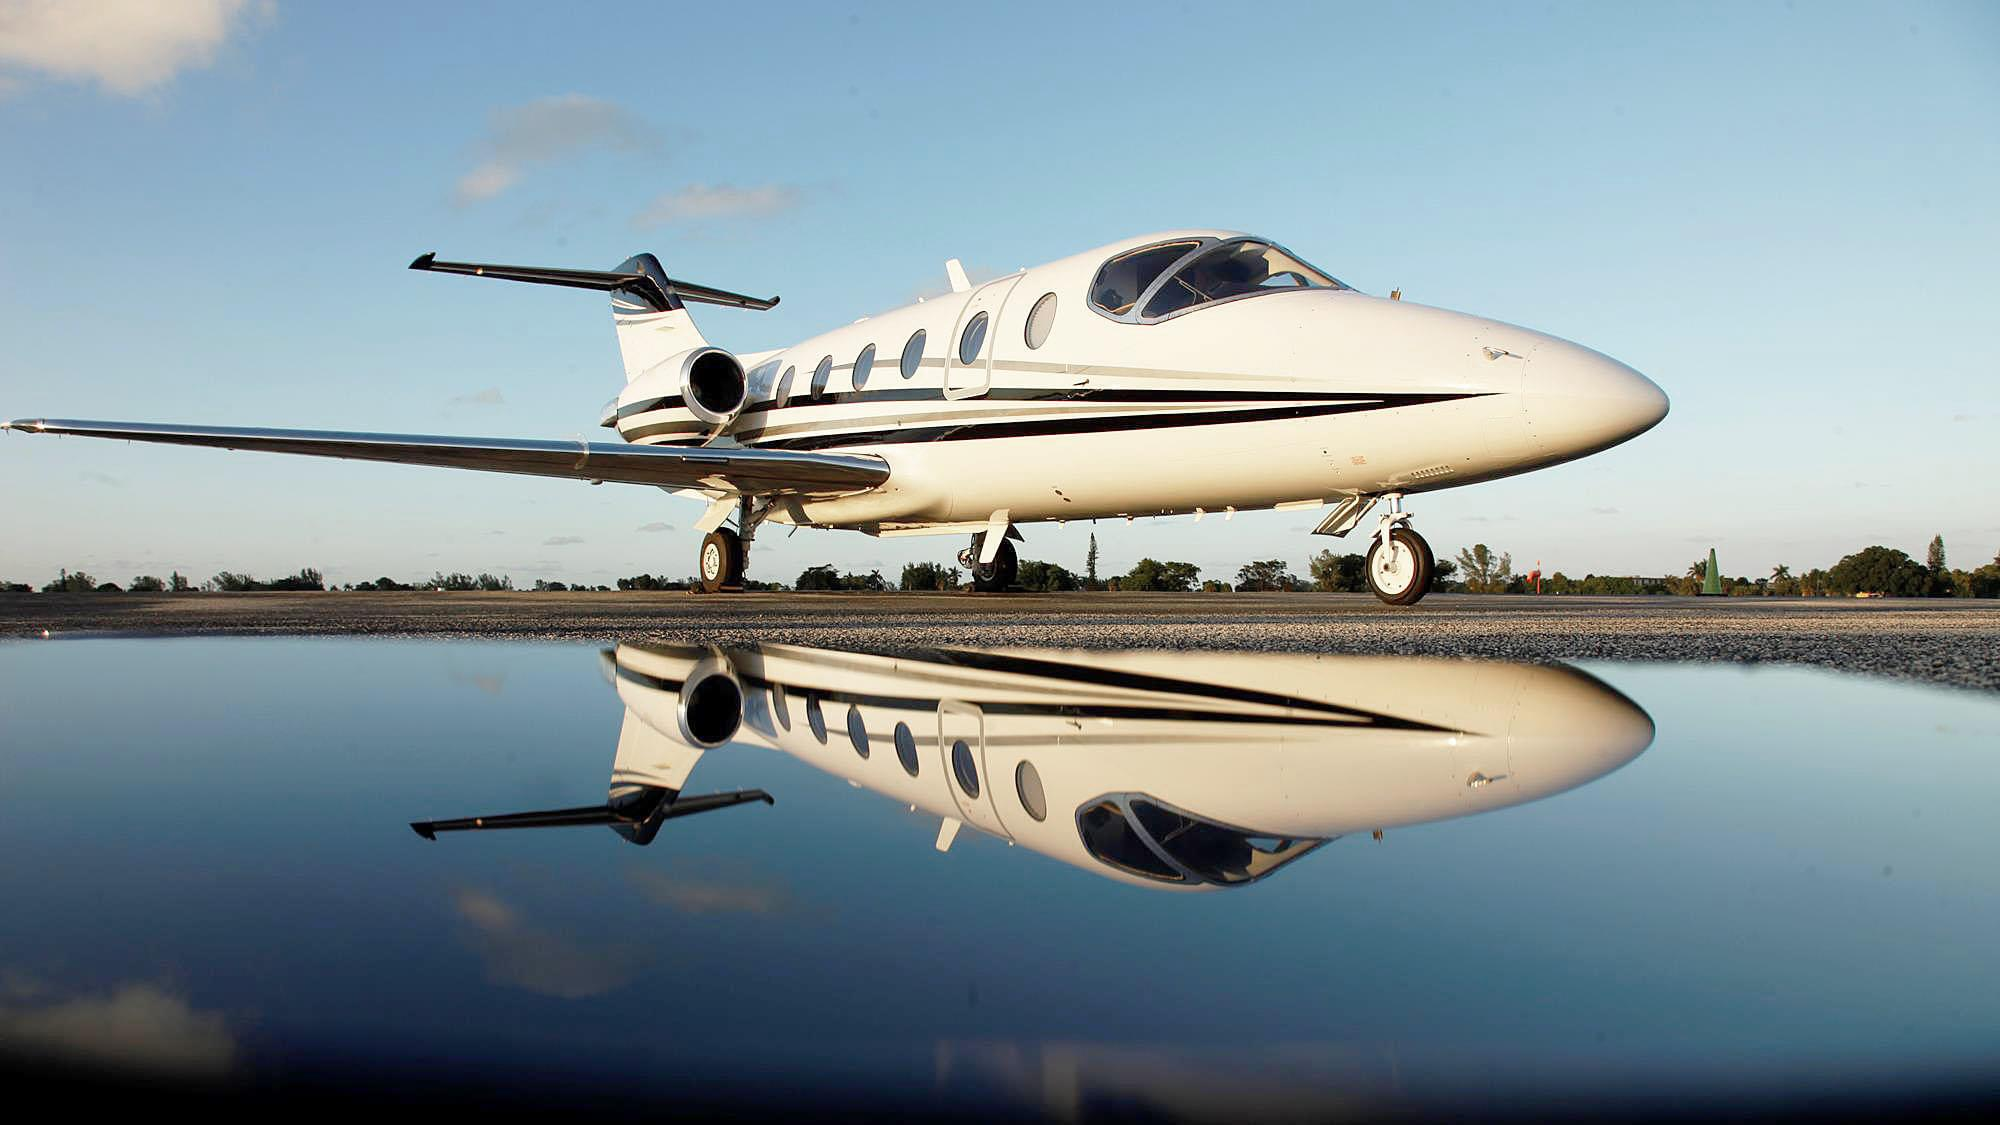 Charter a Beechcraft Beechjet 400 A Light Jet-8-457.88336933045355-136